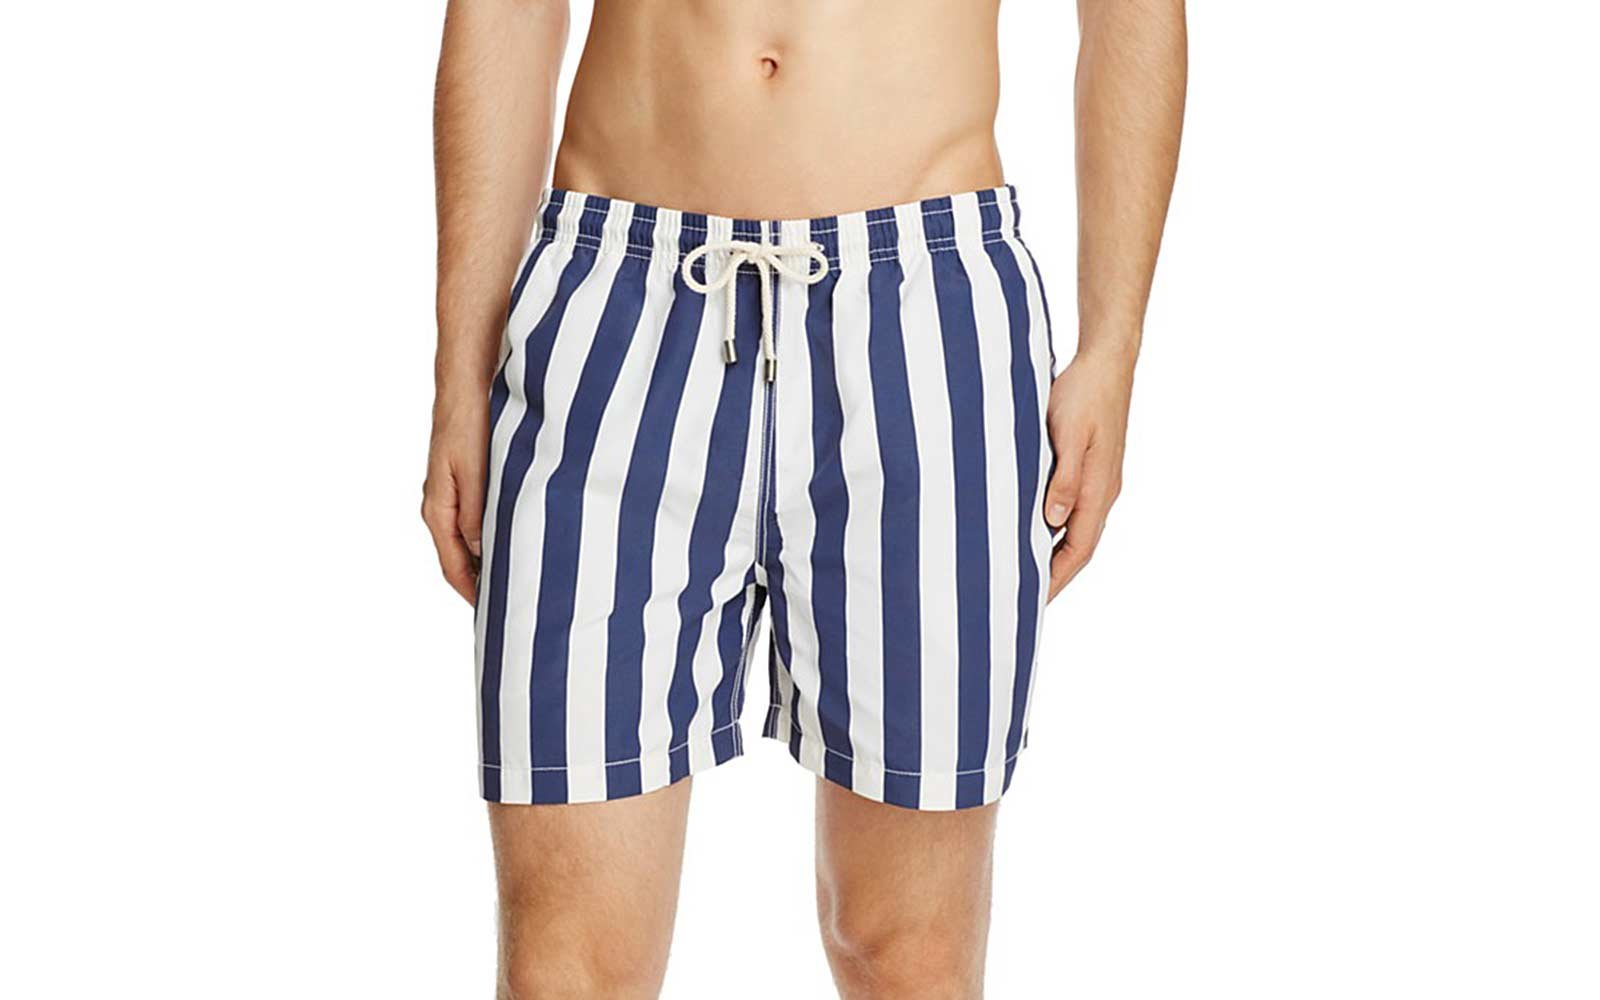 acdb752e03418 The Best Men's Swimsuits for Spring Break | Travel + Leisure